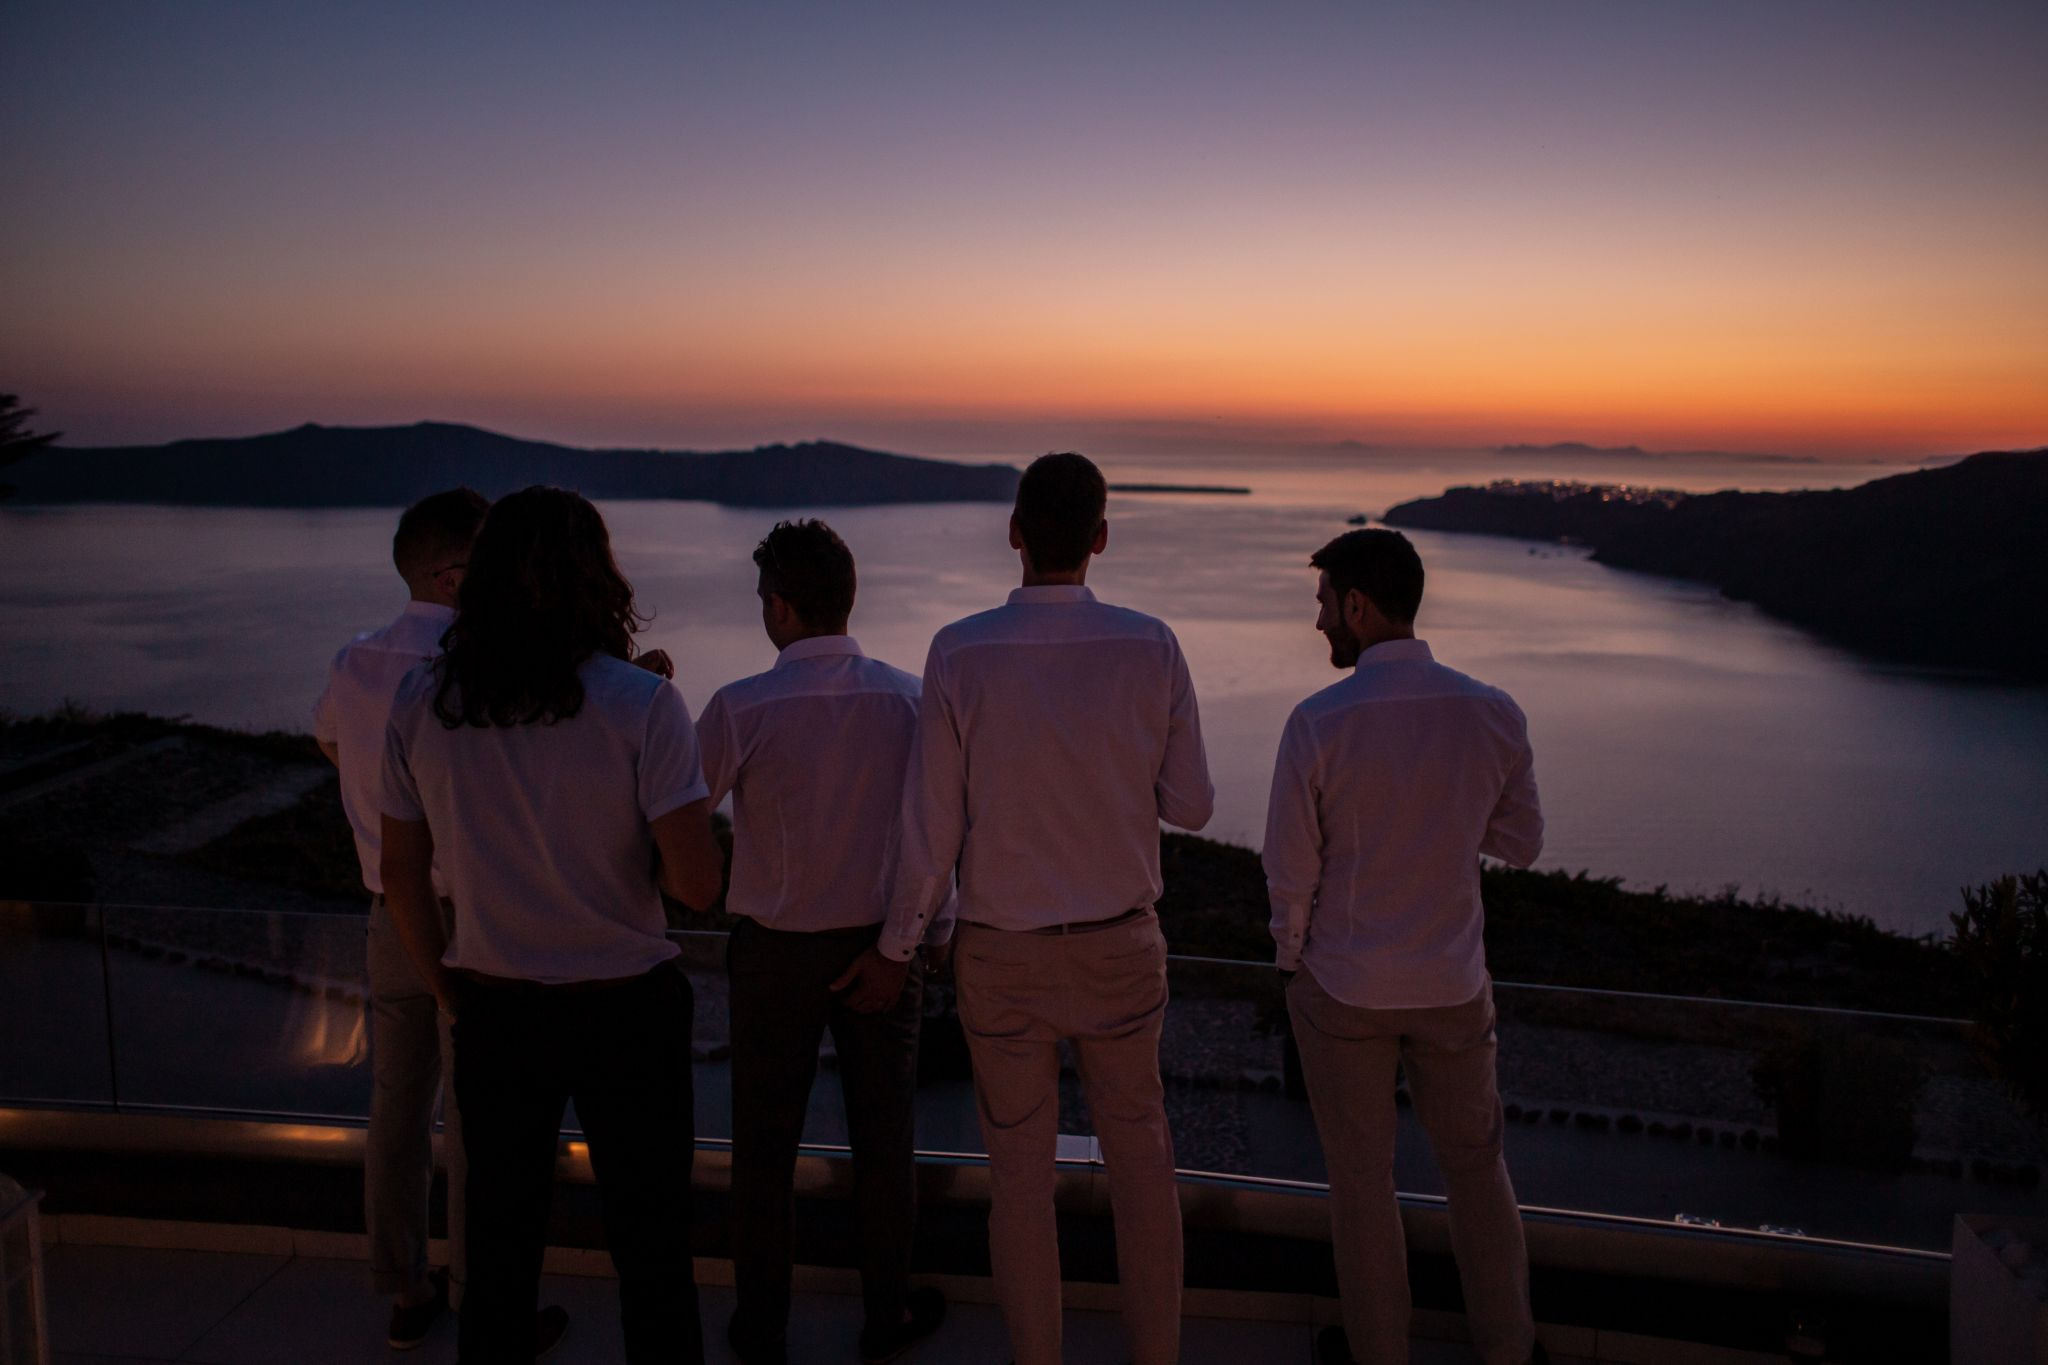 north east wedding photographer hannah layford wedding photography santorini wedding male wedding guests sunset